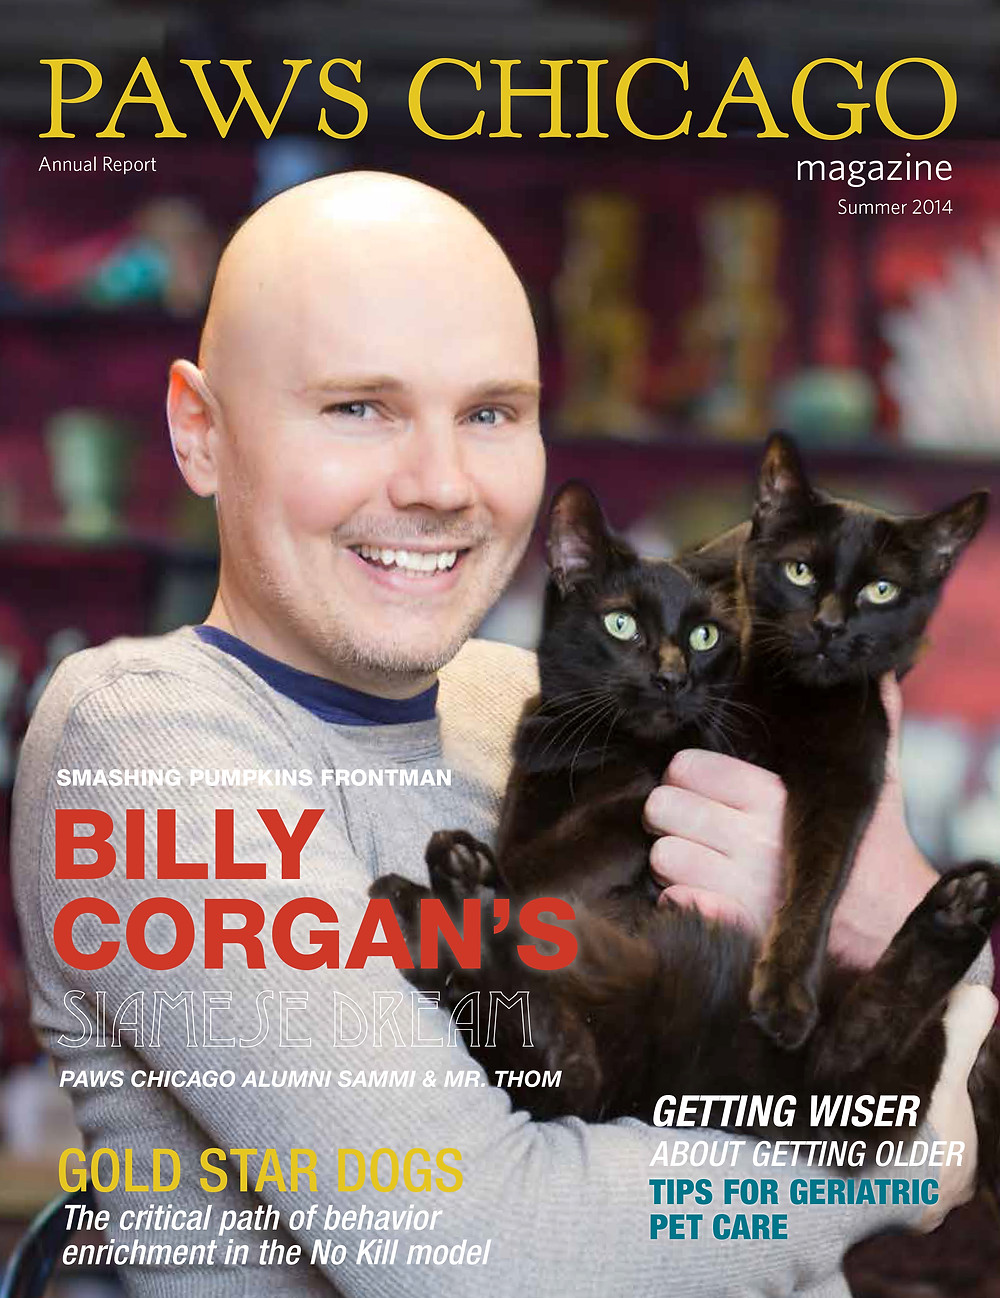 corgan paws chicago magazine-1.jpg